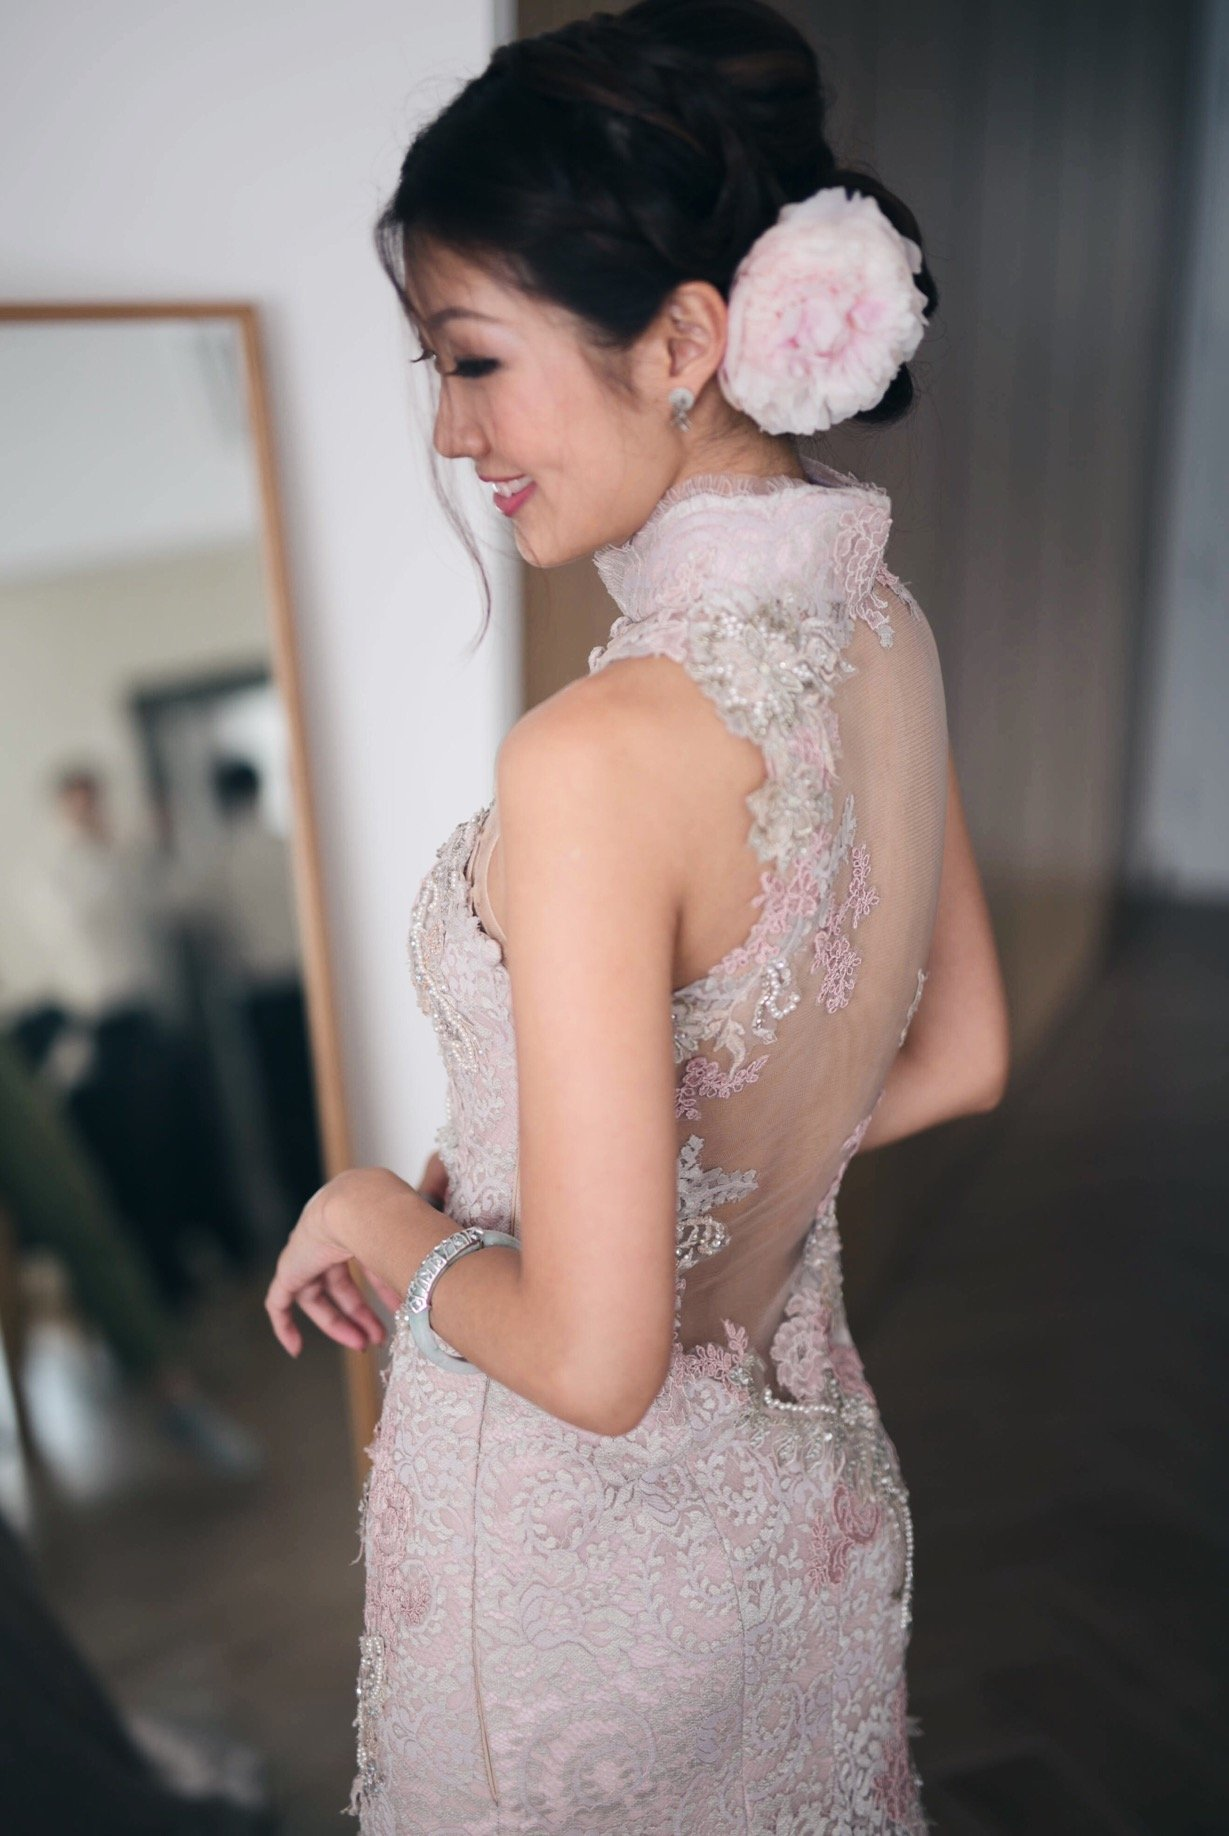 Blog Takeover - Kickstarting this collaboration with a blog takeover, Sherlyn shares with us the cultural significance of the Choo Yilin pieces she wore on her wedding day, and the emotional connection she feels with our brand values - the ones that drive the work we do.This post is written by Sherlyn Chan.